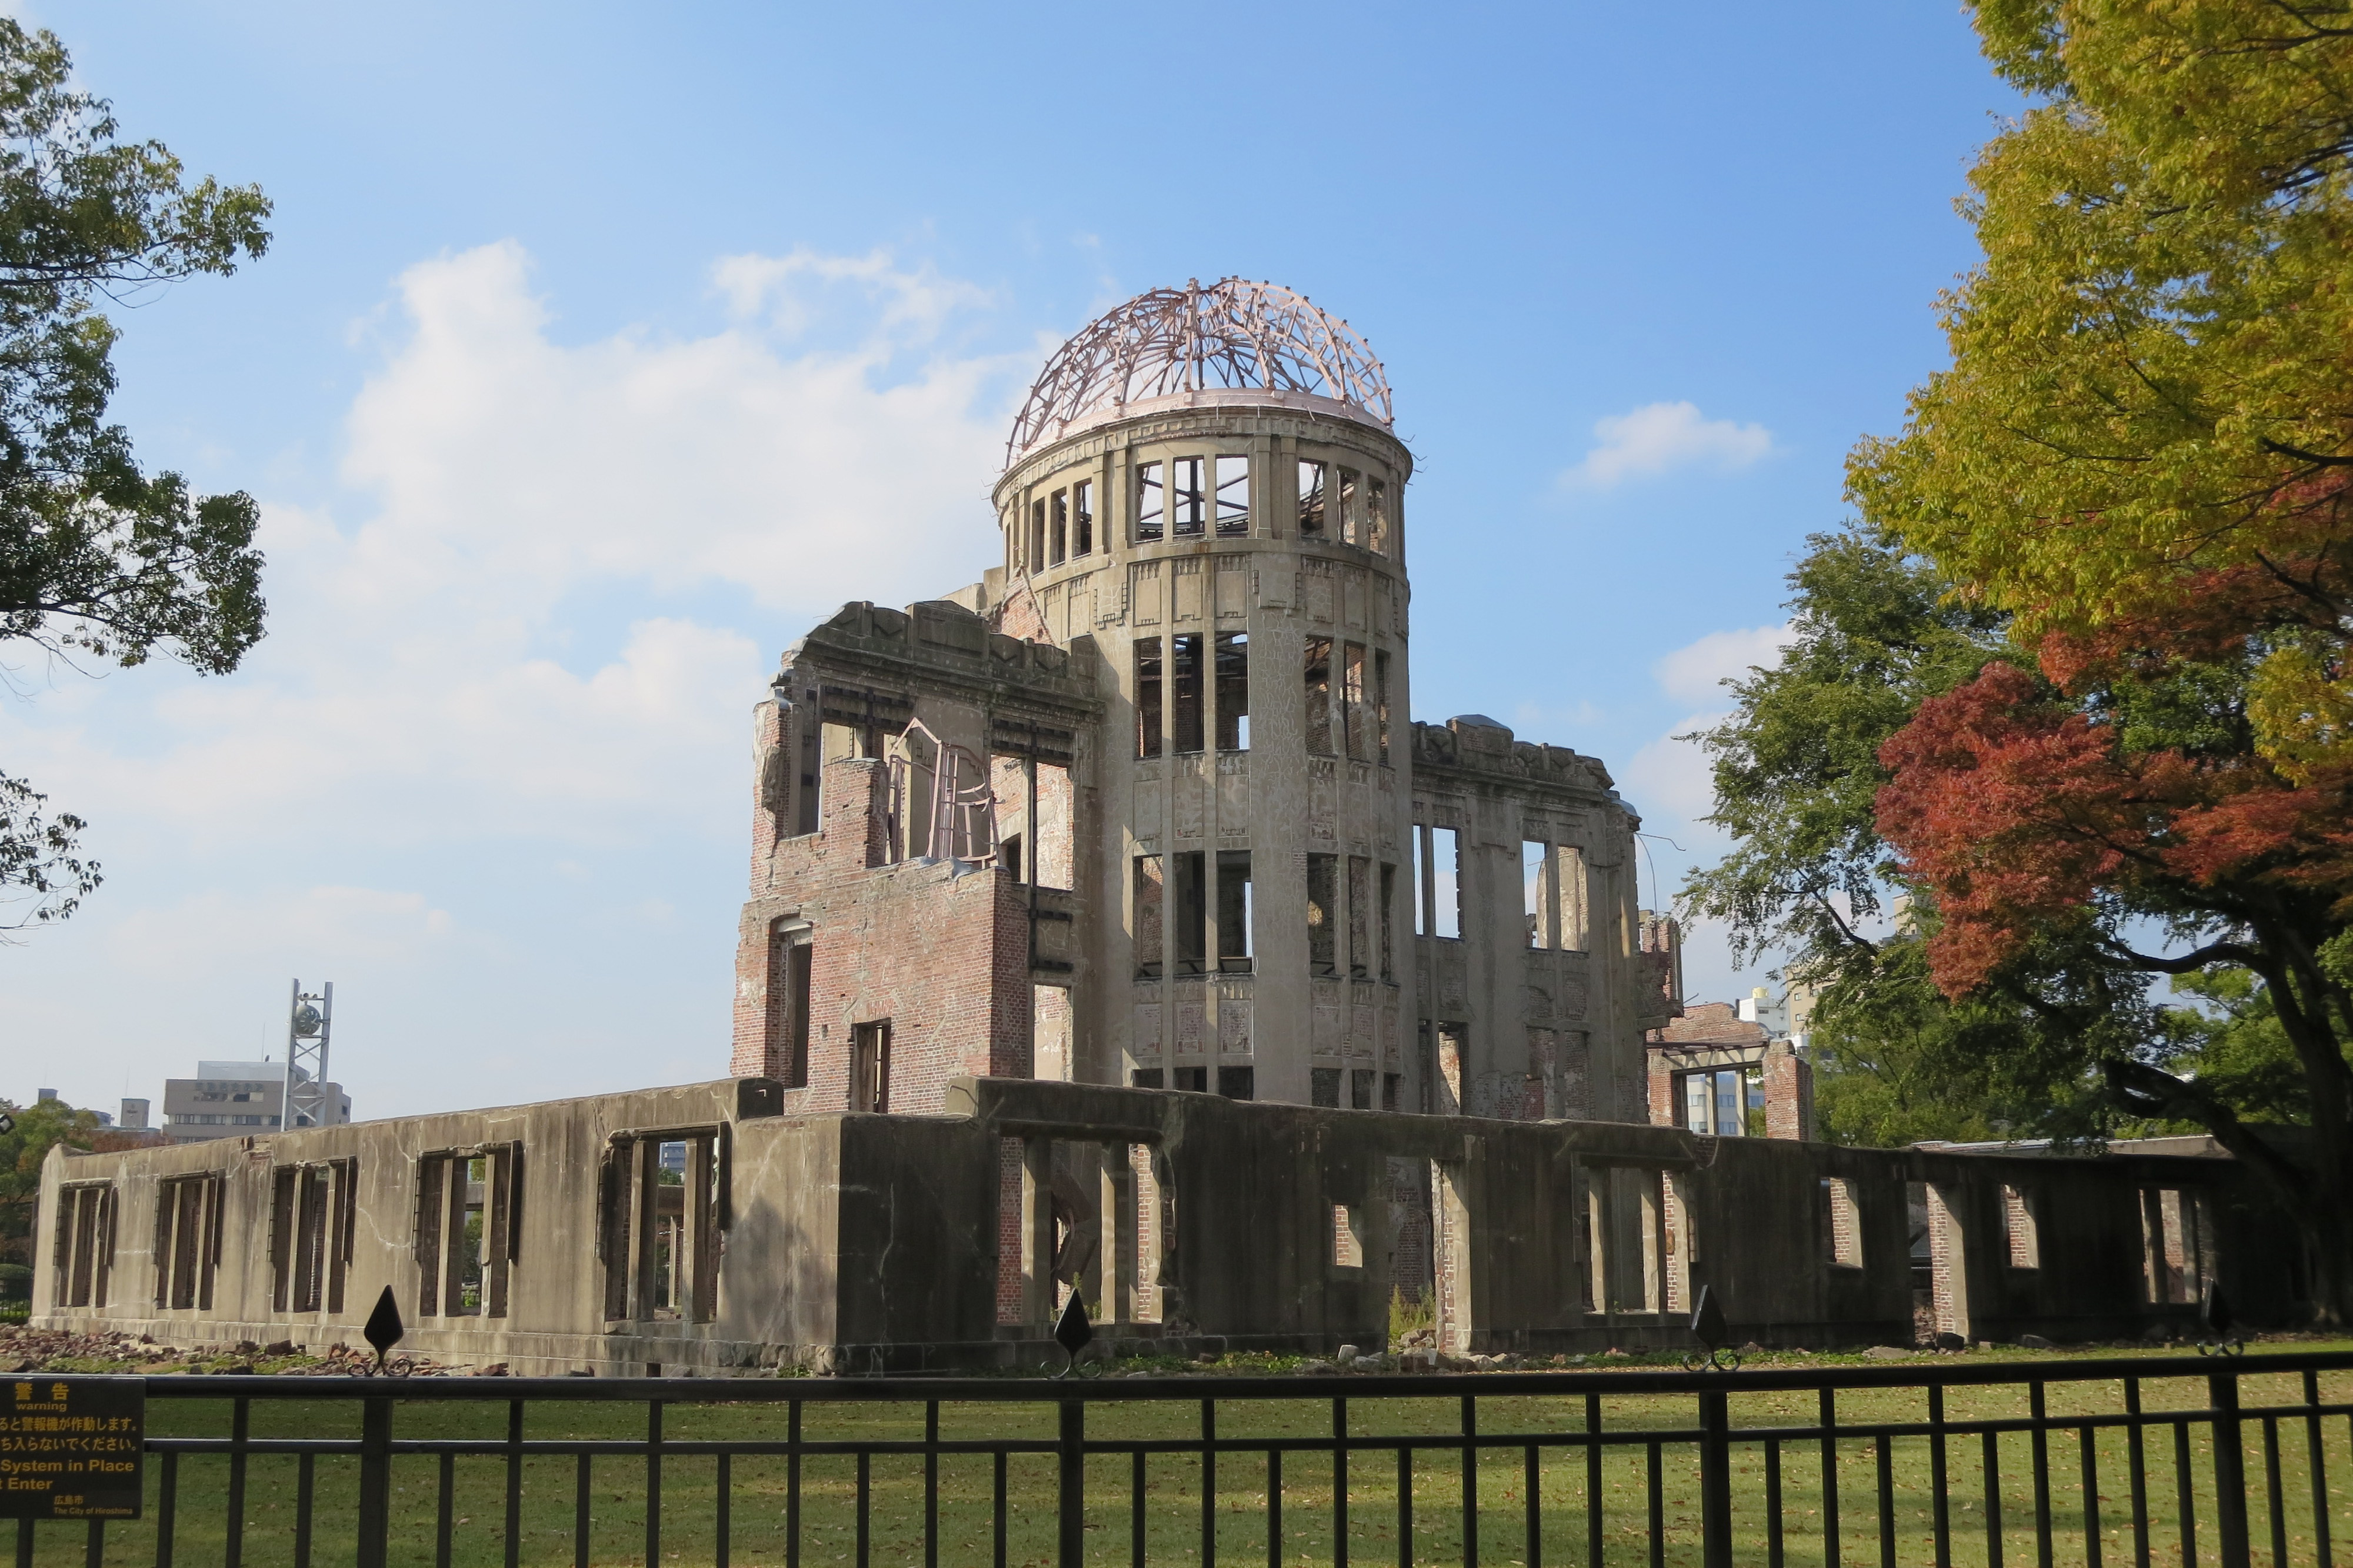 A city's past and present: Three days spent in Hiroshima